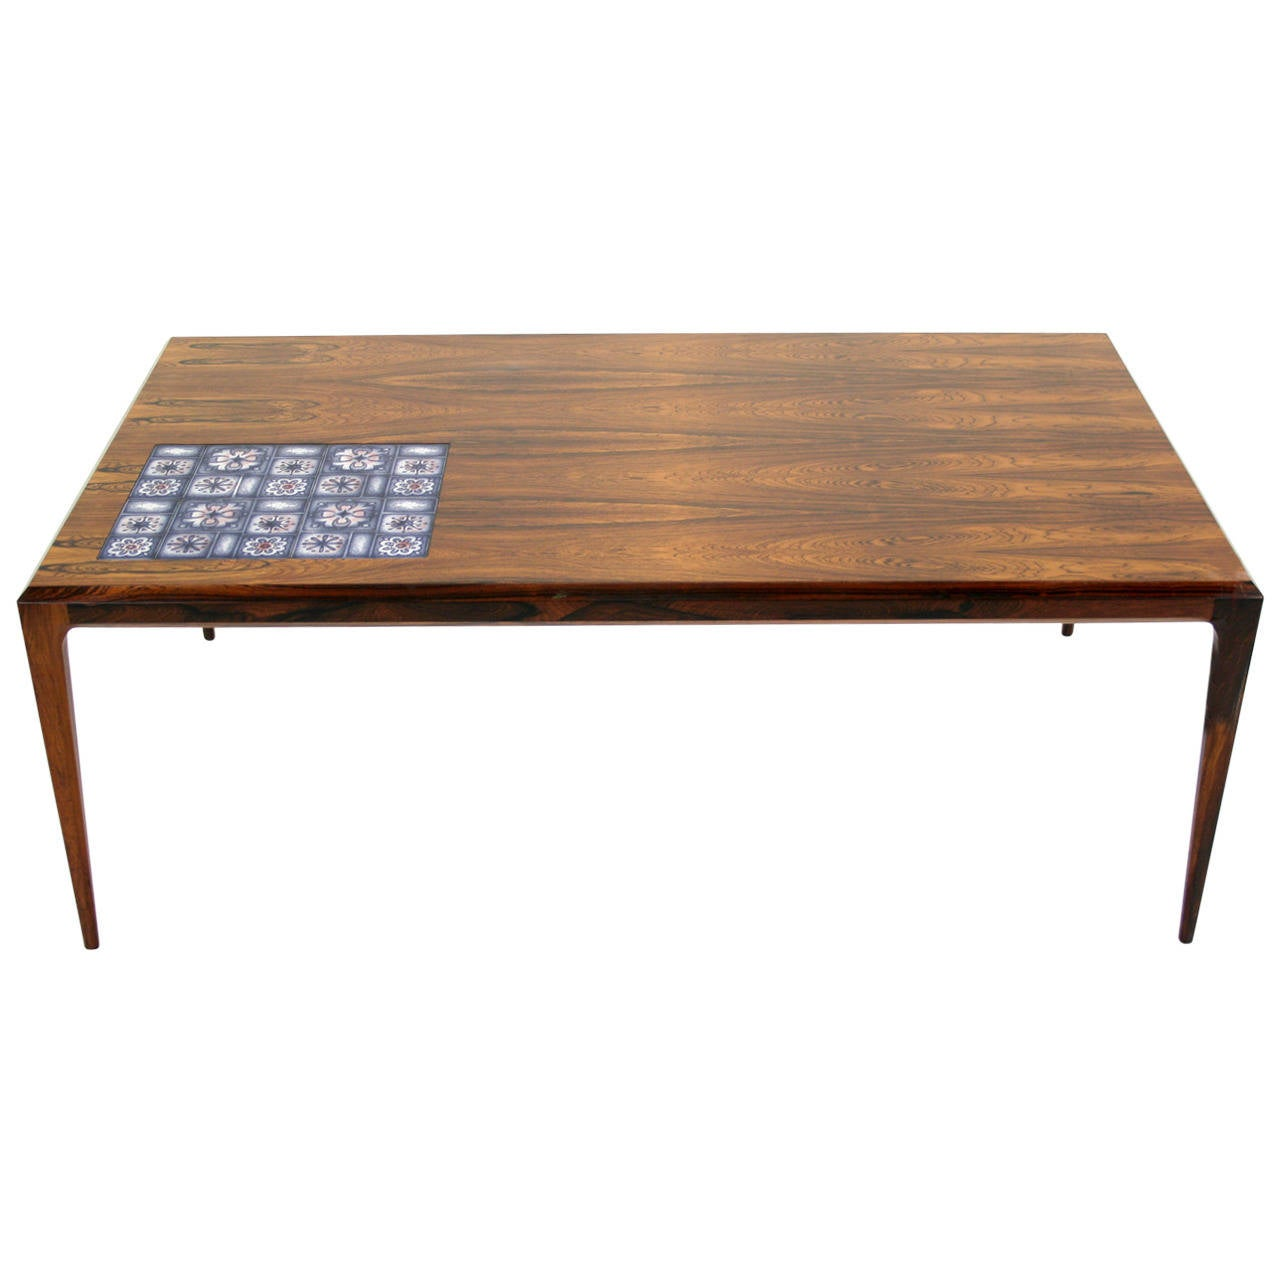 Danish mid century modern rosewood coffee table by for Danish modern coffee table